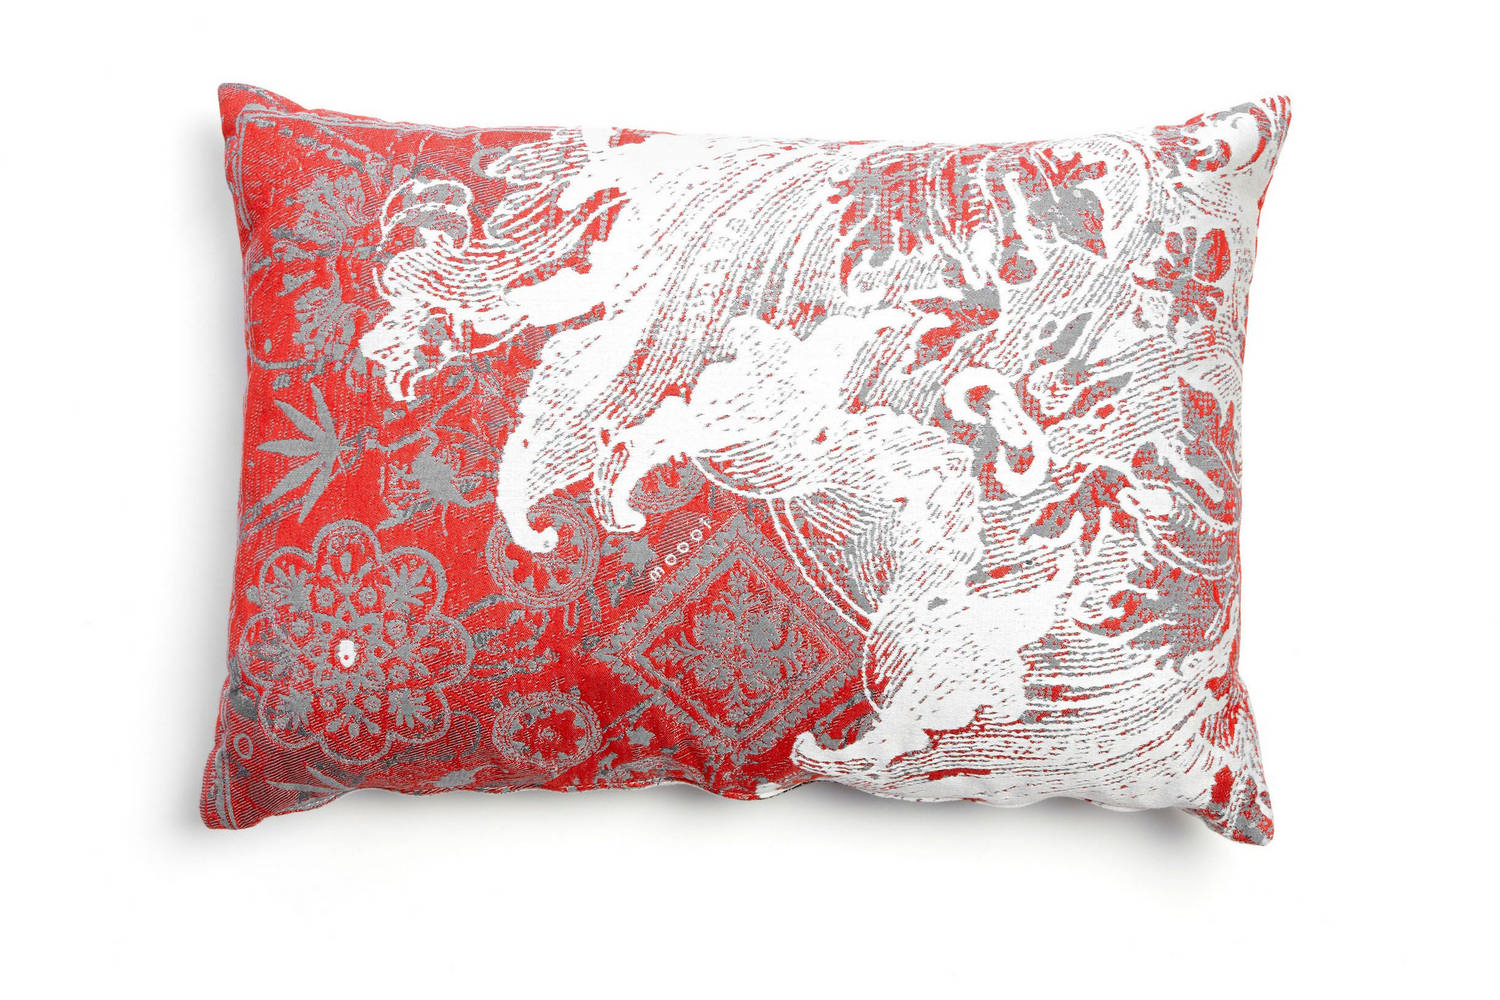 Pillows Melbourne Heritage Oil Pillows By Marcel Wanders For Moooi Space Furniture